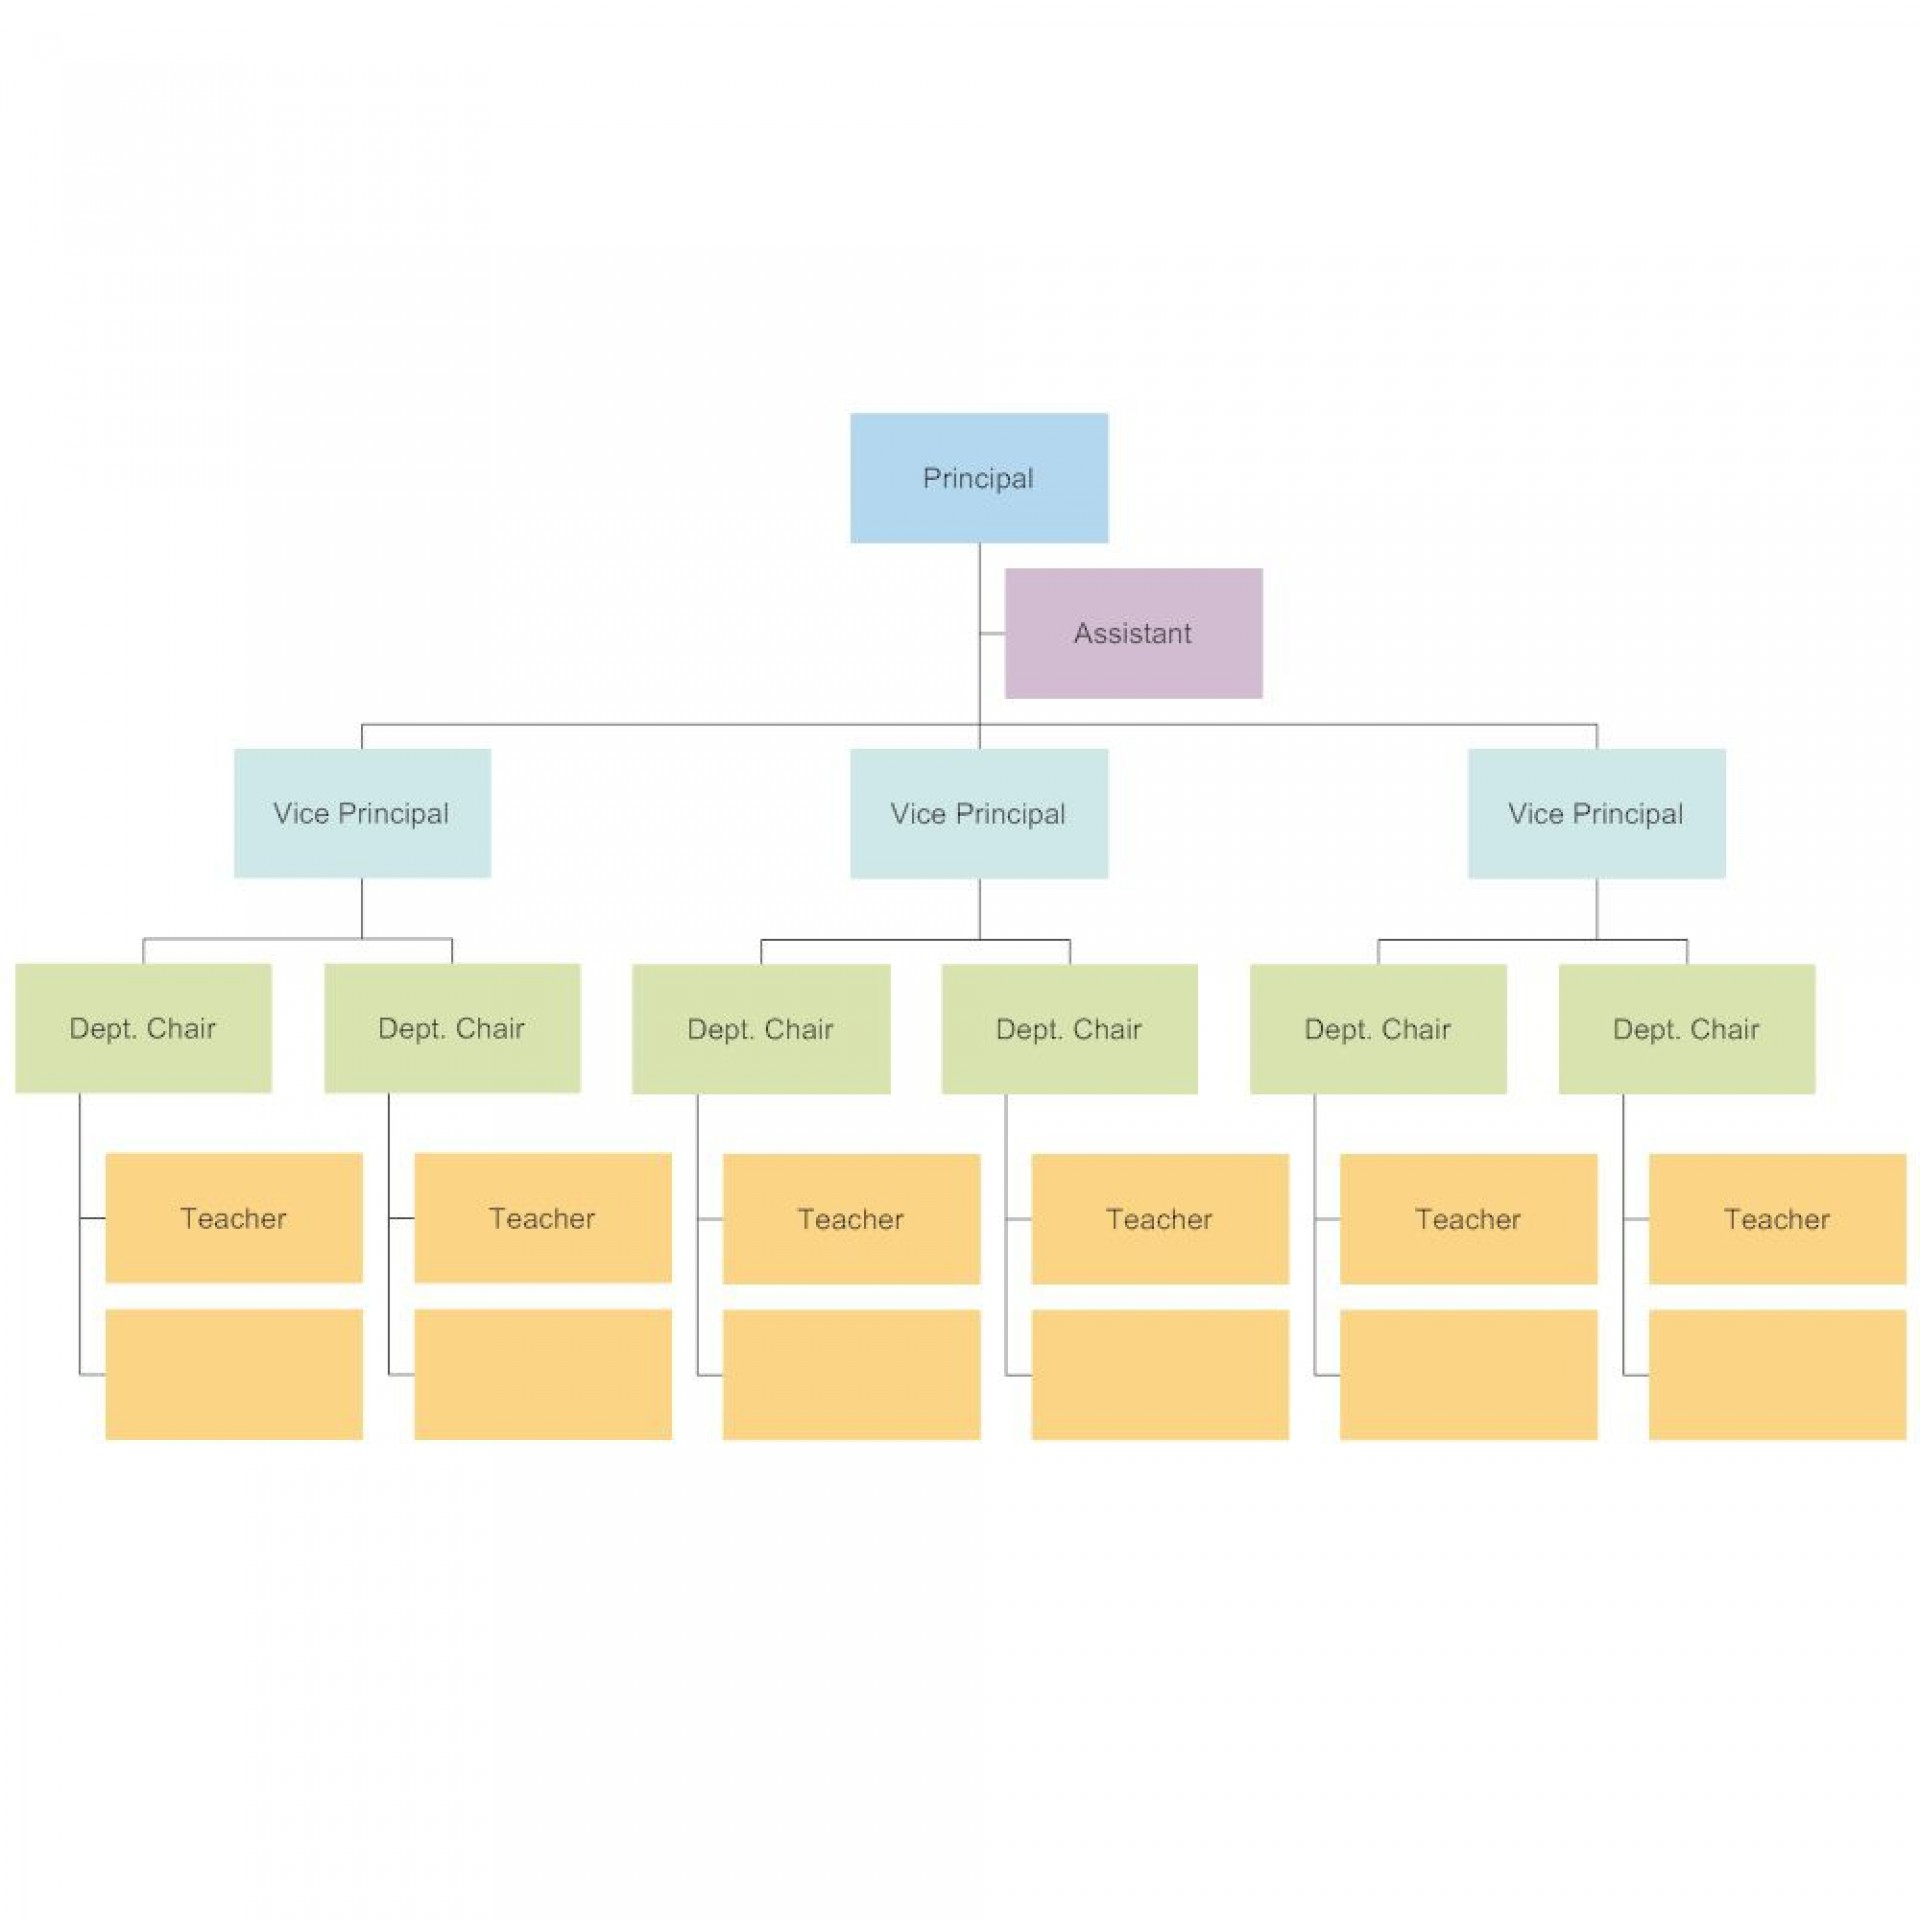 009 Phenomenal Microsoft Office Organizational Chart Template Image  Templates Flow Excel1920